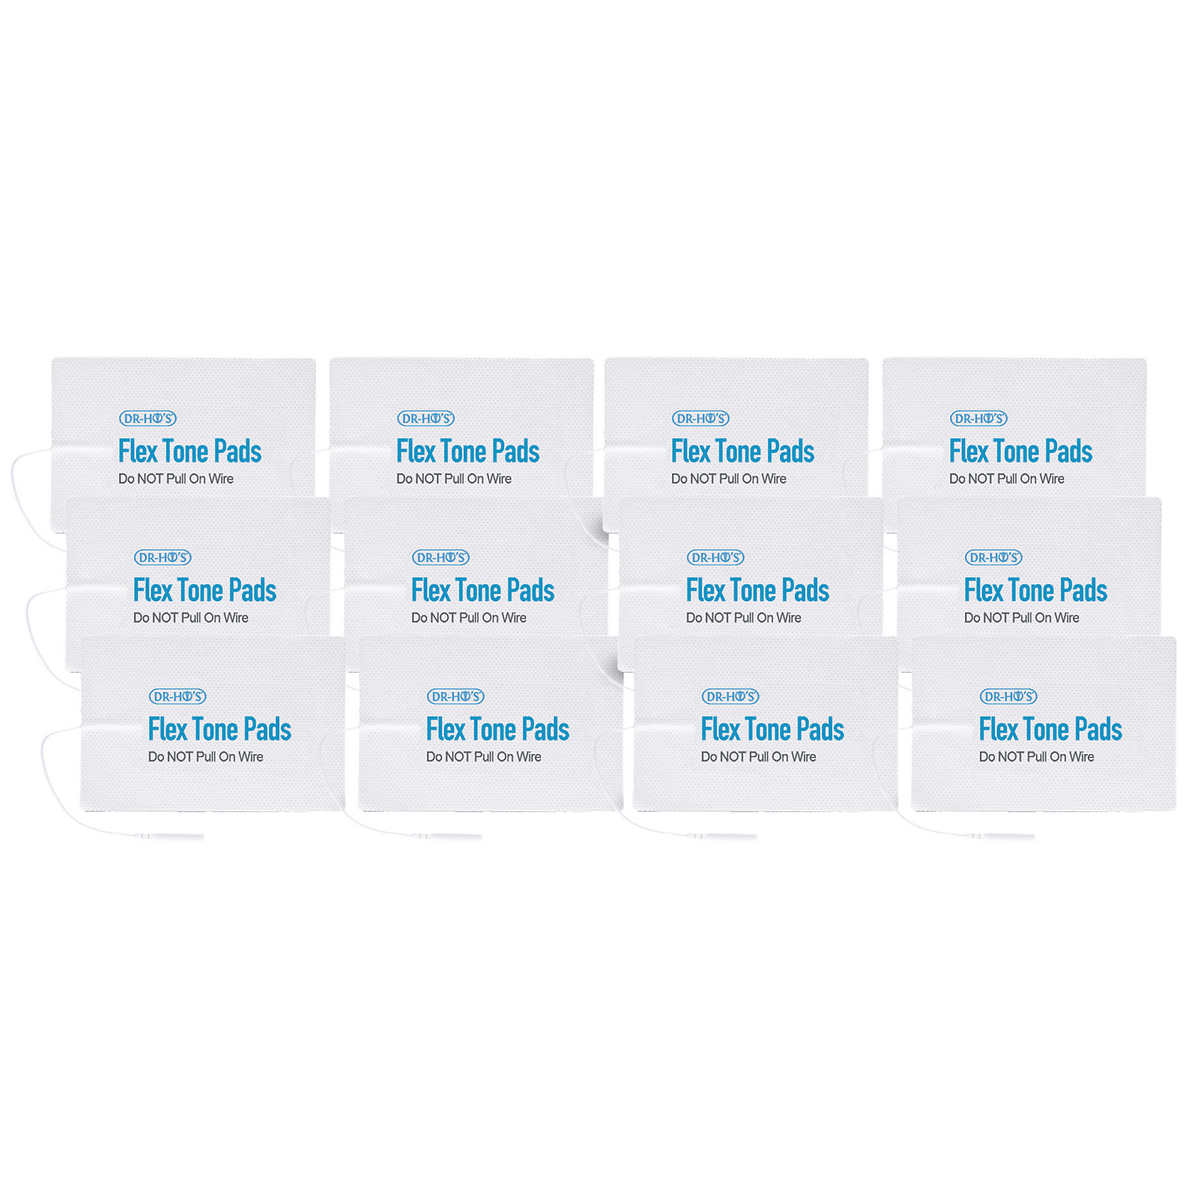 DR-HO'S - Large Replacement Gel Pads - 6 x 2 Large Pads